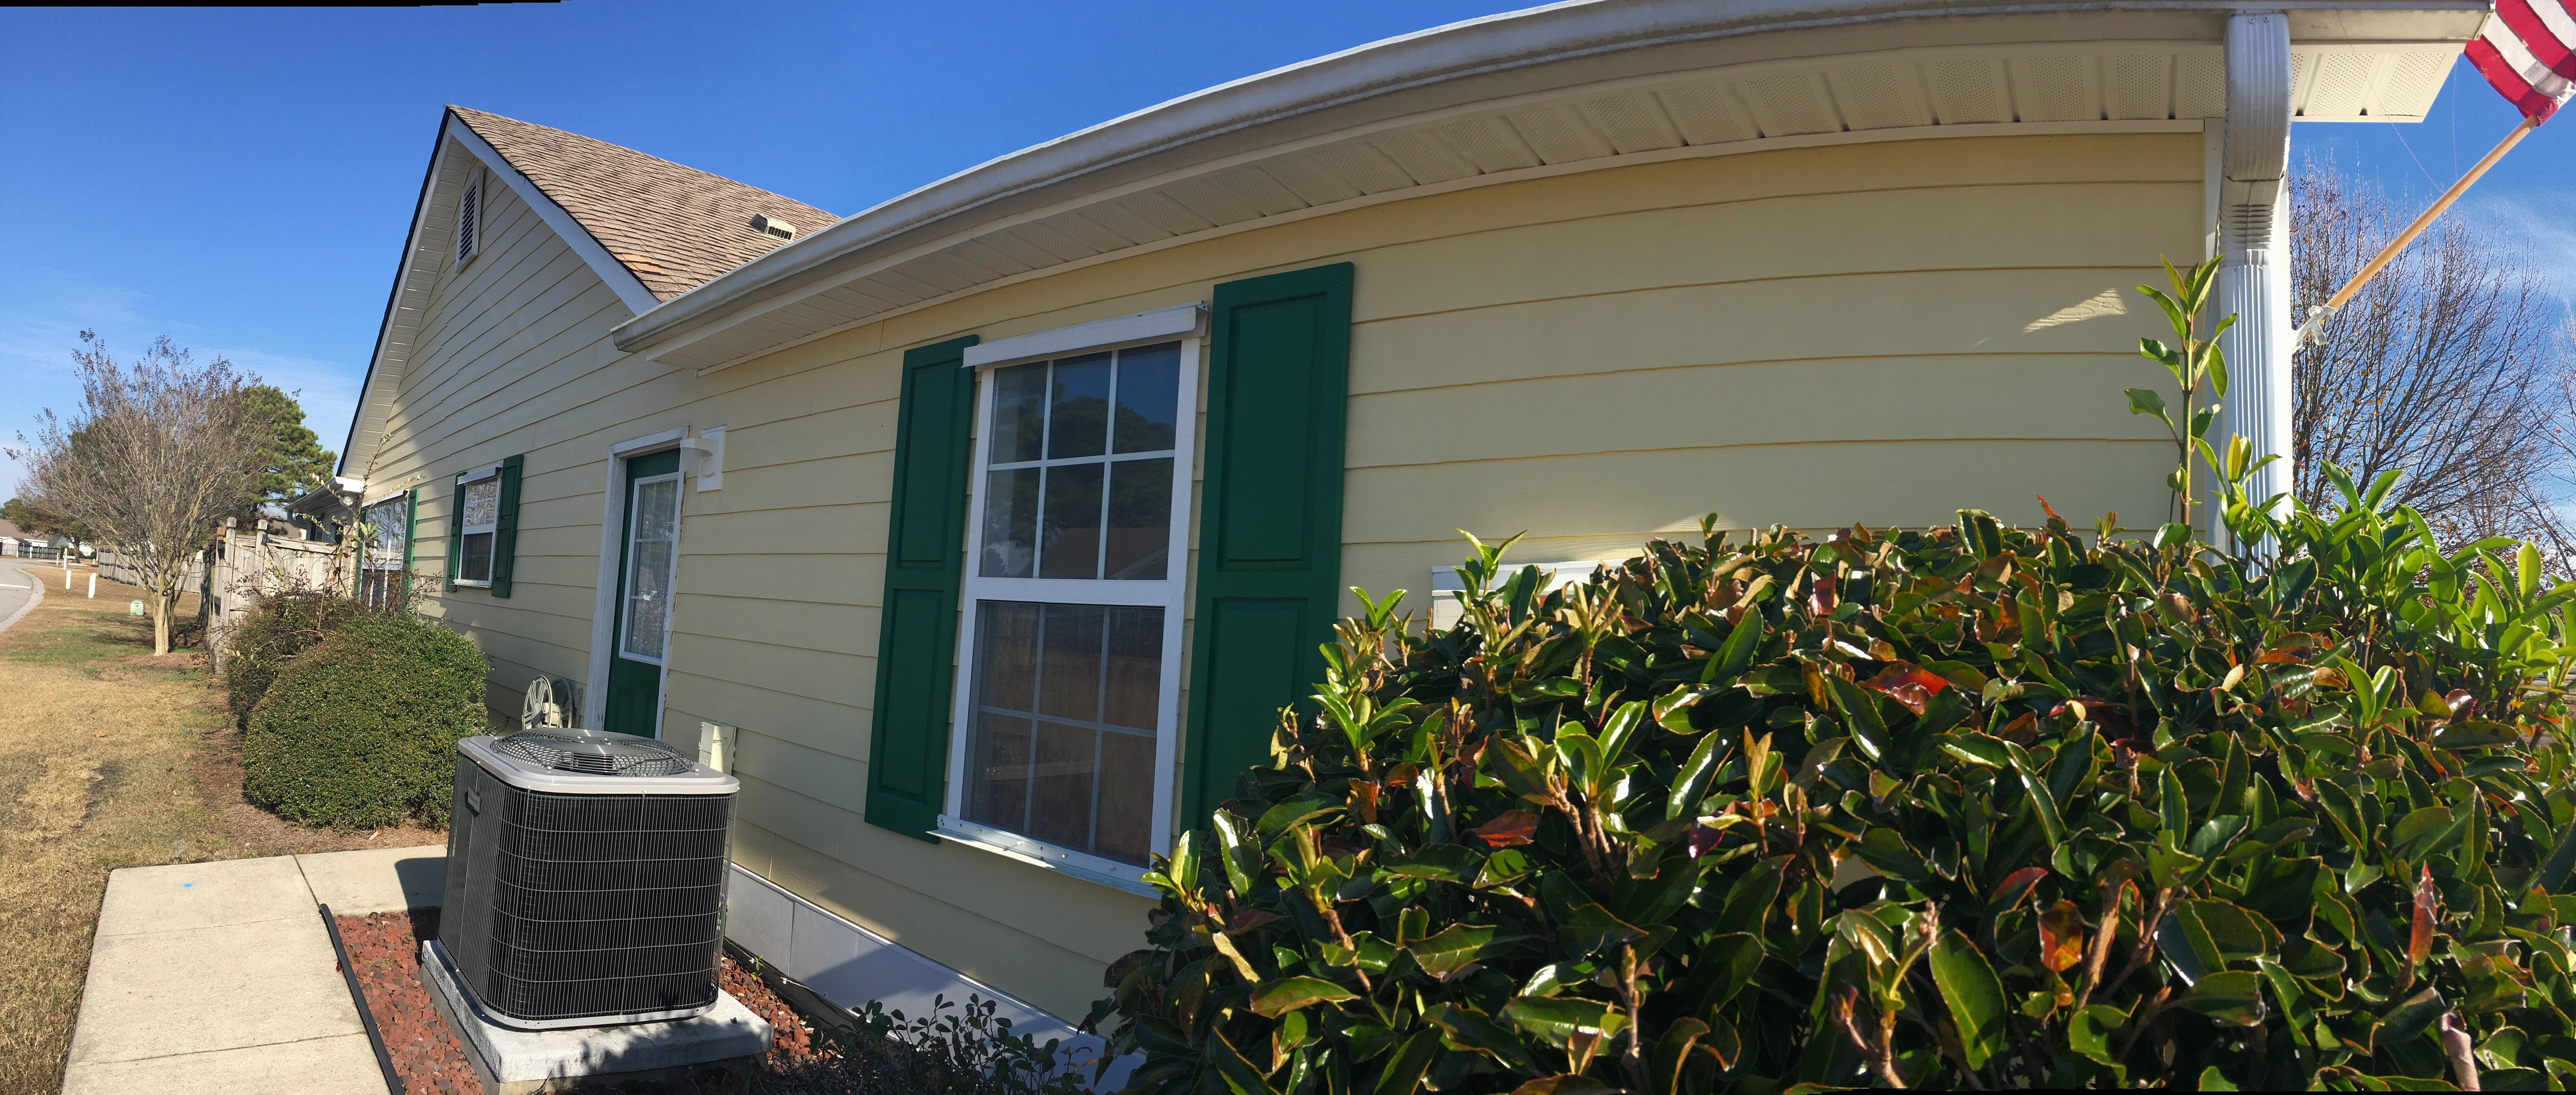 This Home Originally Had Masonite Siding That Had Cracks Throughout The Whole House We Replaced It With James Hardie Color Plus Masonite Siding Siding Roofing